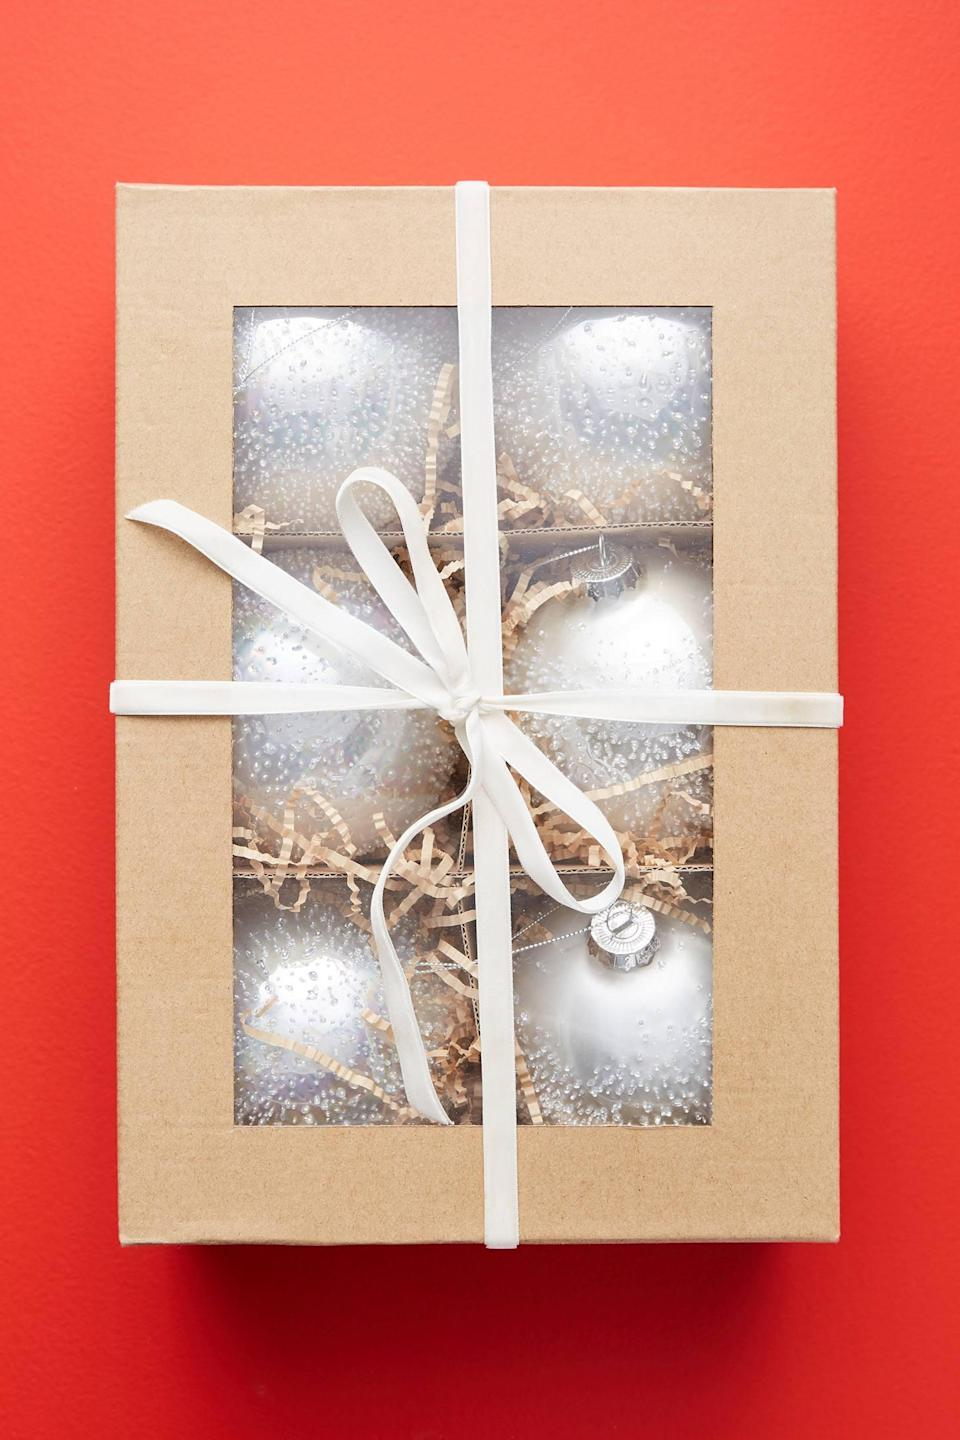 """<p>If you're doing an all-white tree, these <a href=""""https://www.popsugar.com/buy/Wintery-Ball-Ornaments-Set-Six-490586?p_name=Wintery%20Ball%20Ornaments%2C%20Set%20of%20Six&retailer=anthropologie.com&pid=490586&price=30&evar1=casa%3Aus&evar9=46615300&evar98=https%3A%2F%2Fwww.popsugar.com%2Fhome%2Fphoto-gallery%2F46615300%2Fimage%2F46615457%2FWintery-Ball-Ornaments-Set-Six&list1=shopping%2Canthropologie%2Choliday%2Cchristmas%2Cchristmas%20decorations%2Choliday%20decor%2Chome%20shopping&prop13=mobile&pdata=1"""" rel=""""nofollow noopener"""" class=""""link rapid-noclick-resp"""" target=""""_blank"""" data-ylk=""""slk:Wintery Ball Ornaments, Set of Six"""">Wintery Ball Ornaments, Set of Six</a> ($30) are perfect. </p>"""